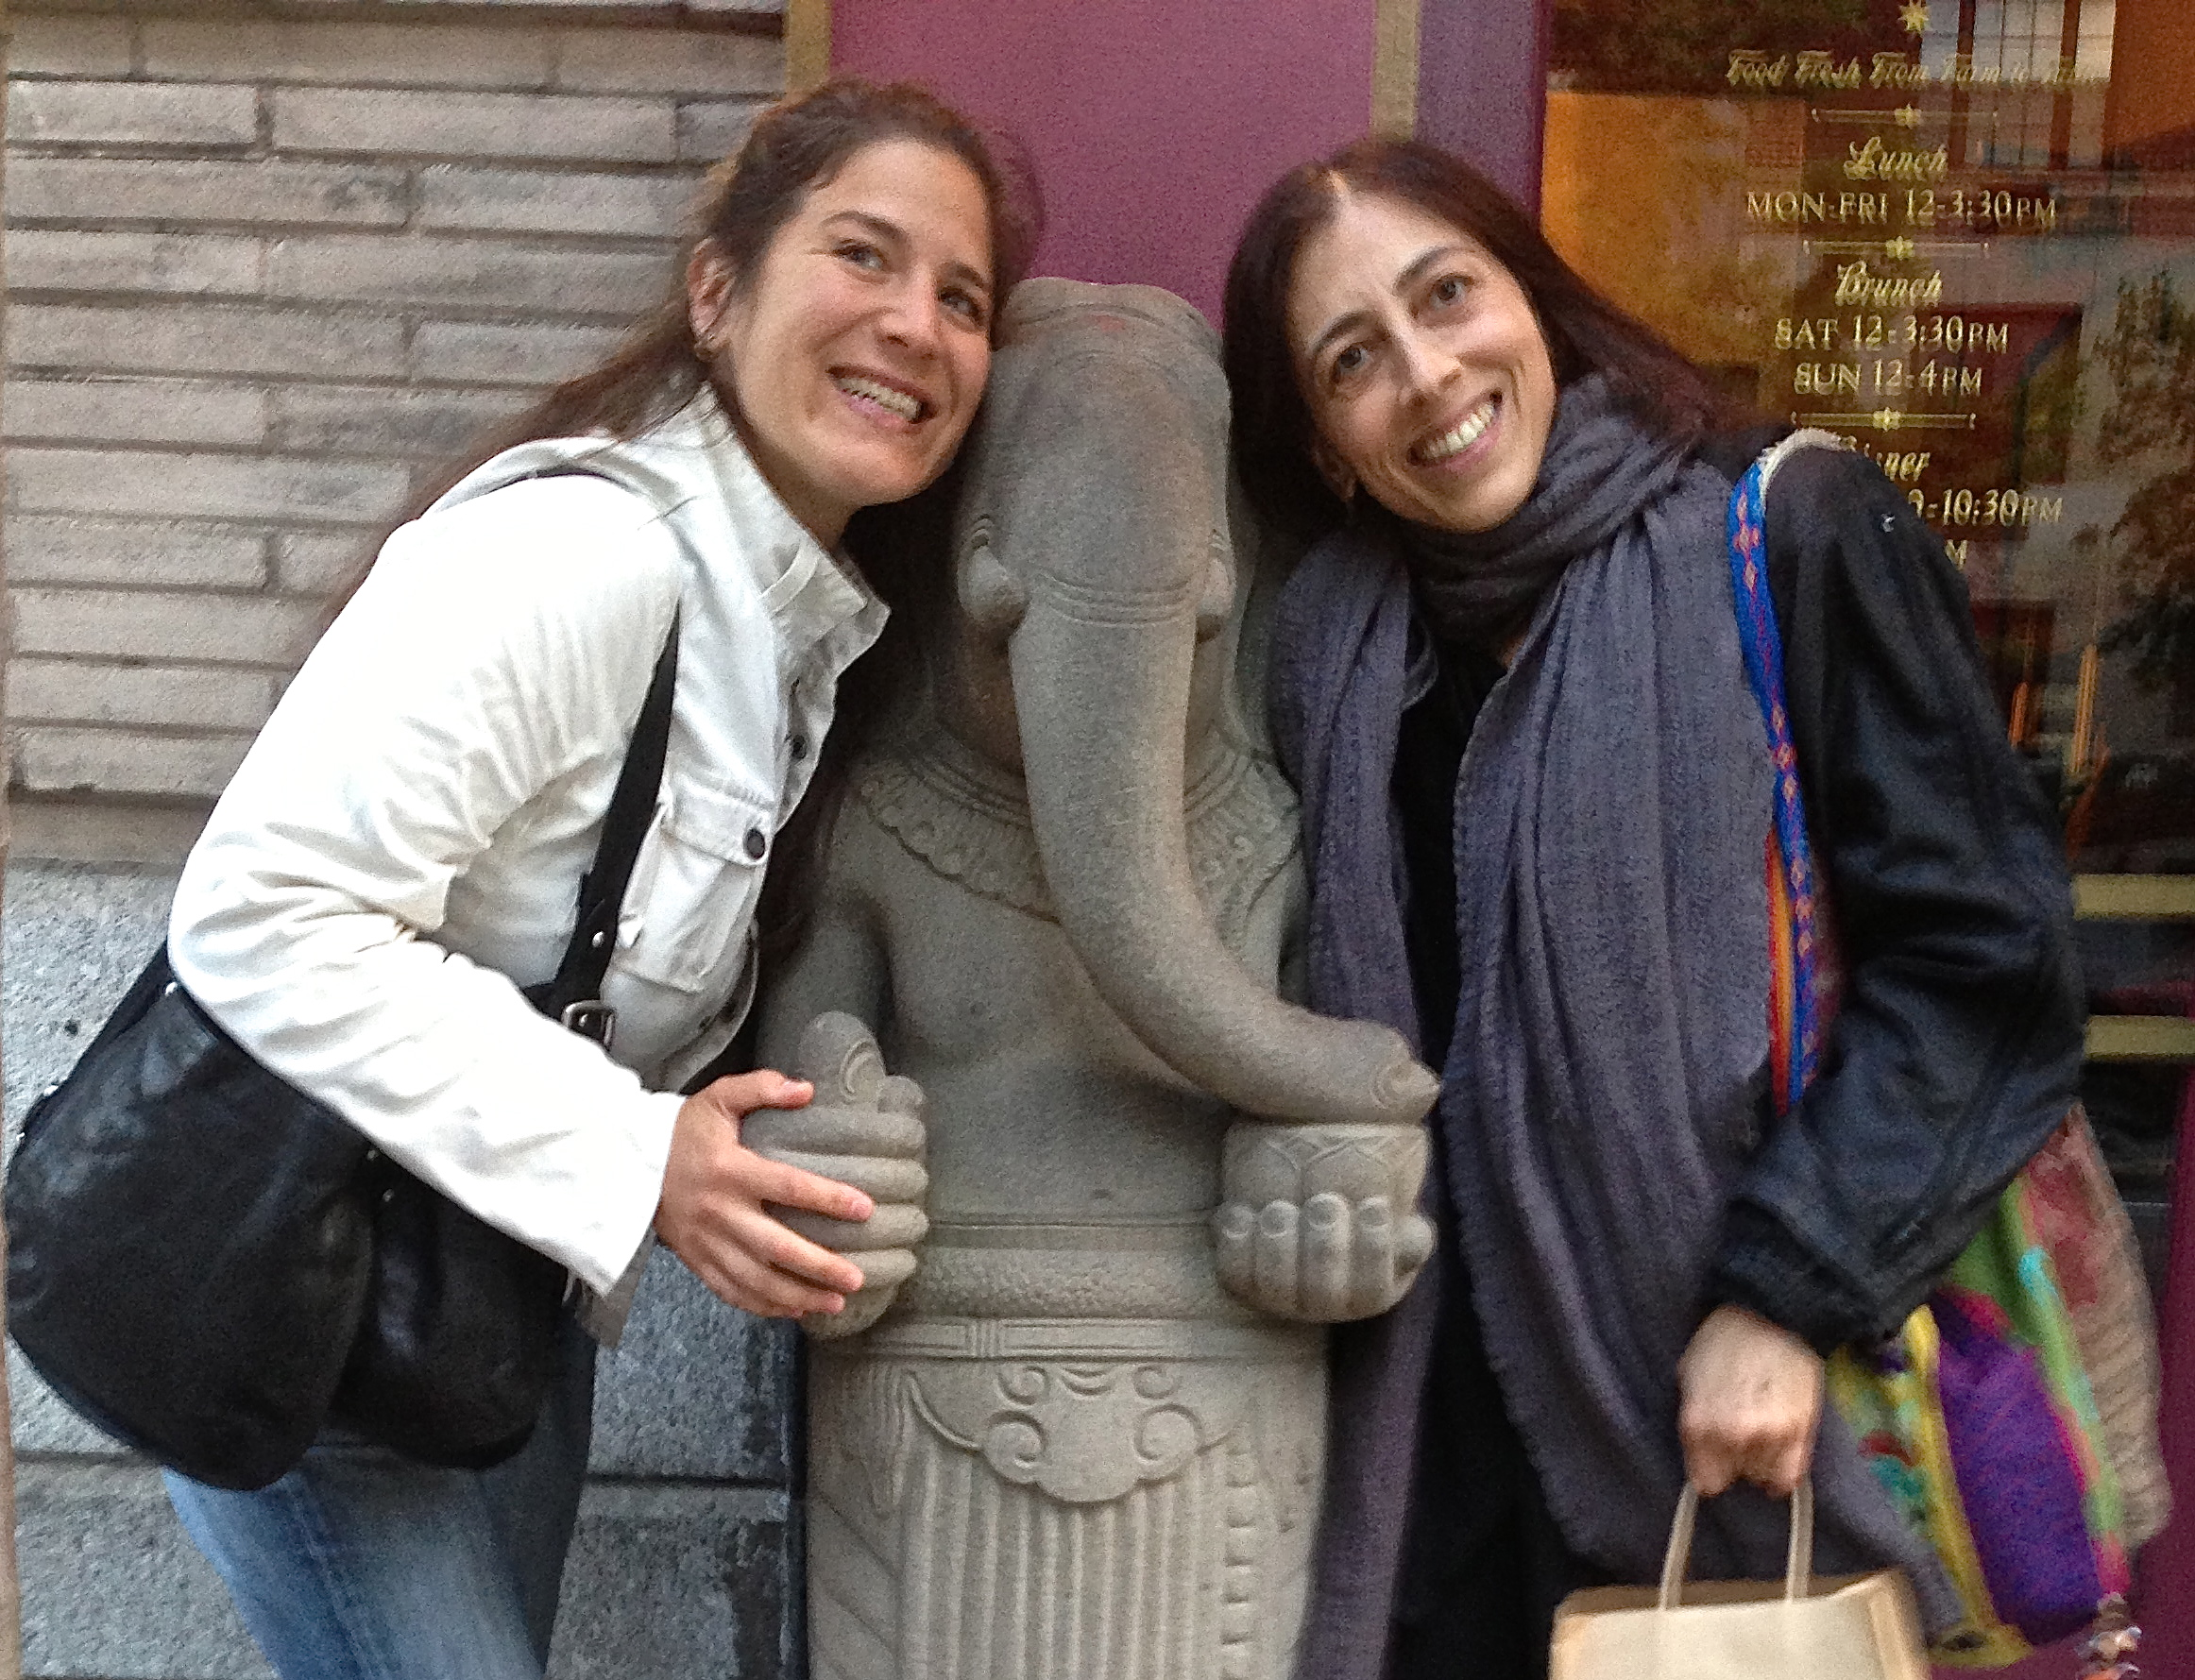 Sarah Willis and Dr. Eden Fromberg met as students at the Jivamukti Yoga center back around 15 years ago. They have been friends, peers, and Dr. Fromberg has attended to Sarah in the role of being her trusted physician for many years, and was instrumental in the birth of her son Elias, born January 7, 2012, when Sarah was 38. This fortunate alliance is giving way to symbiotic and fascinating work, demystifying the practice of Yoga and inviting fertility and the Sacred Feminine into our lives.  Sarah and Eden are thankful for this opportunity to serve and empower other women.